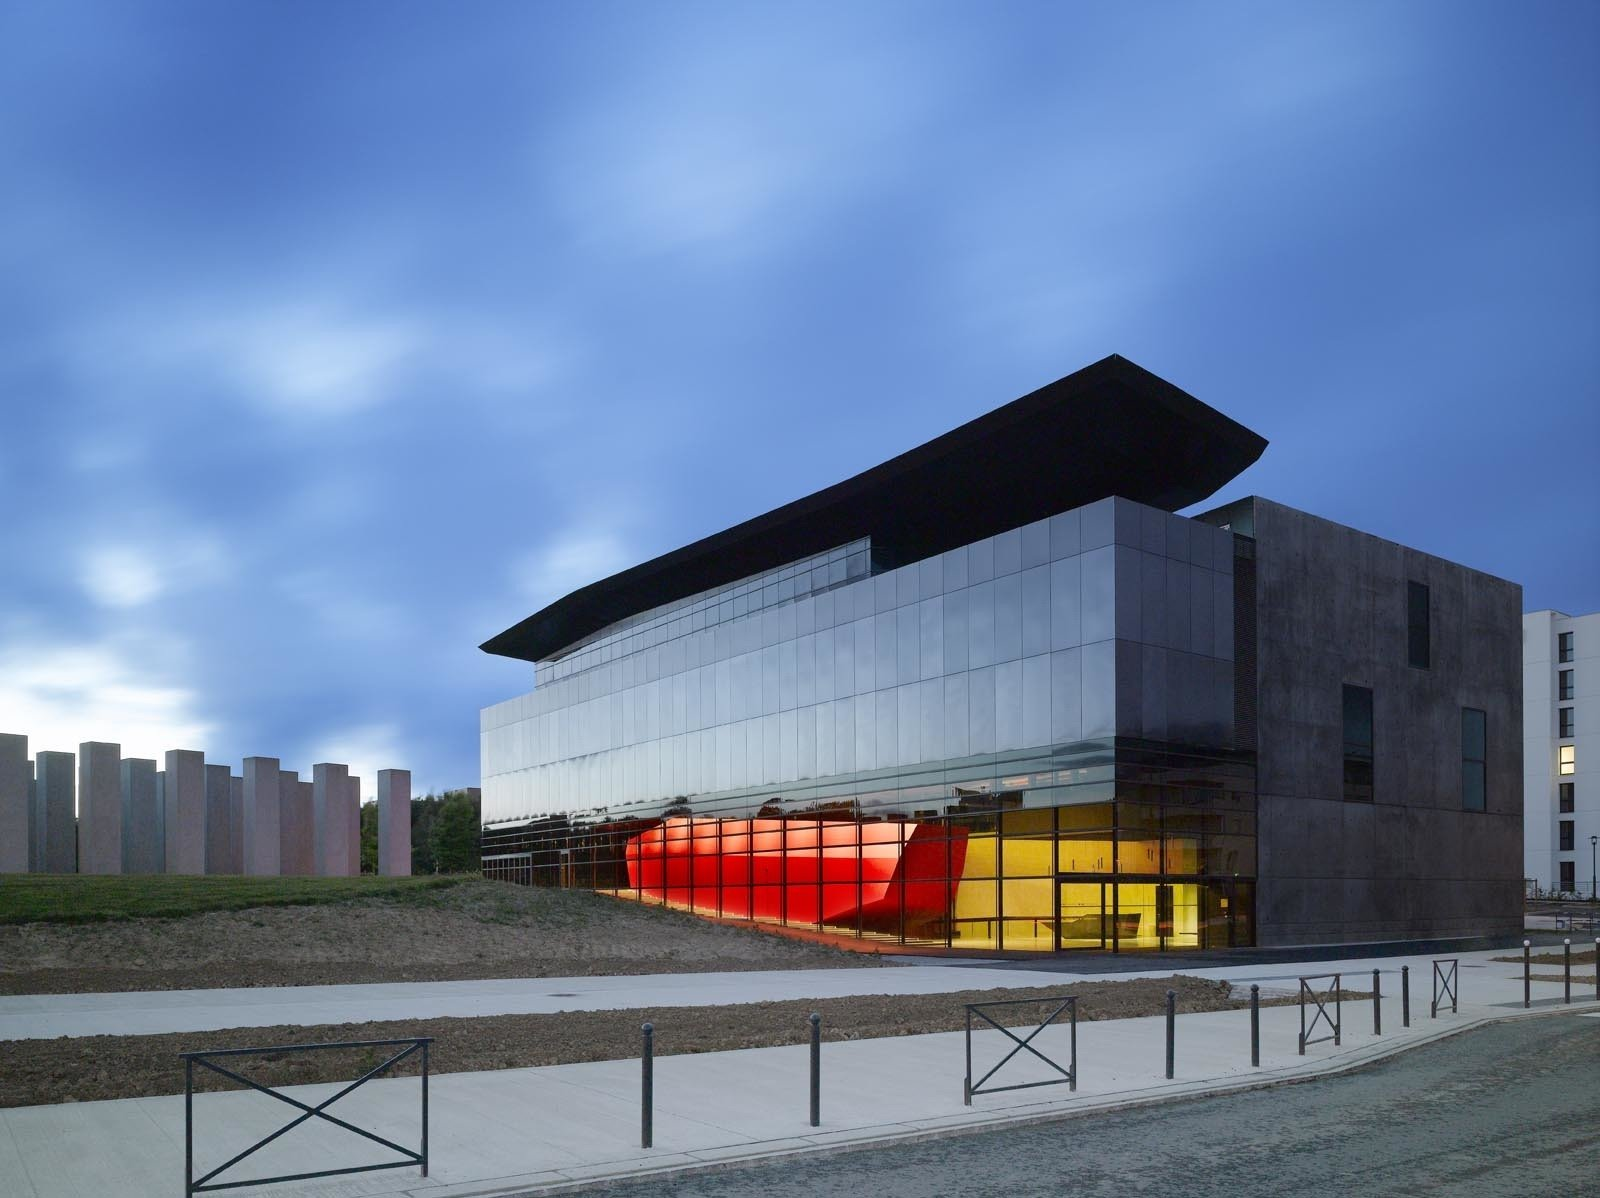 Decq designed the FRAC Bretagne Museum, a reflective glass structure that houses contemporary art, in Rennes, France.  Museums